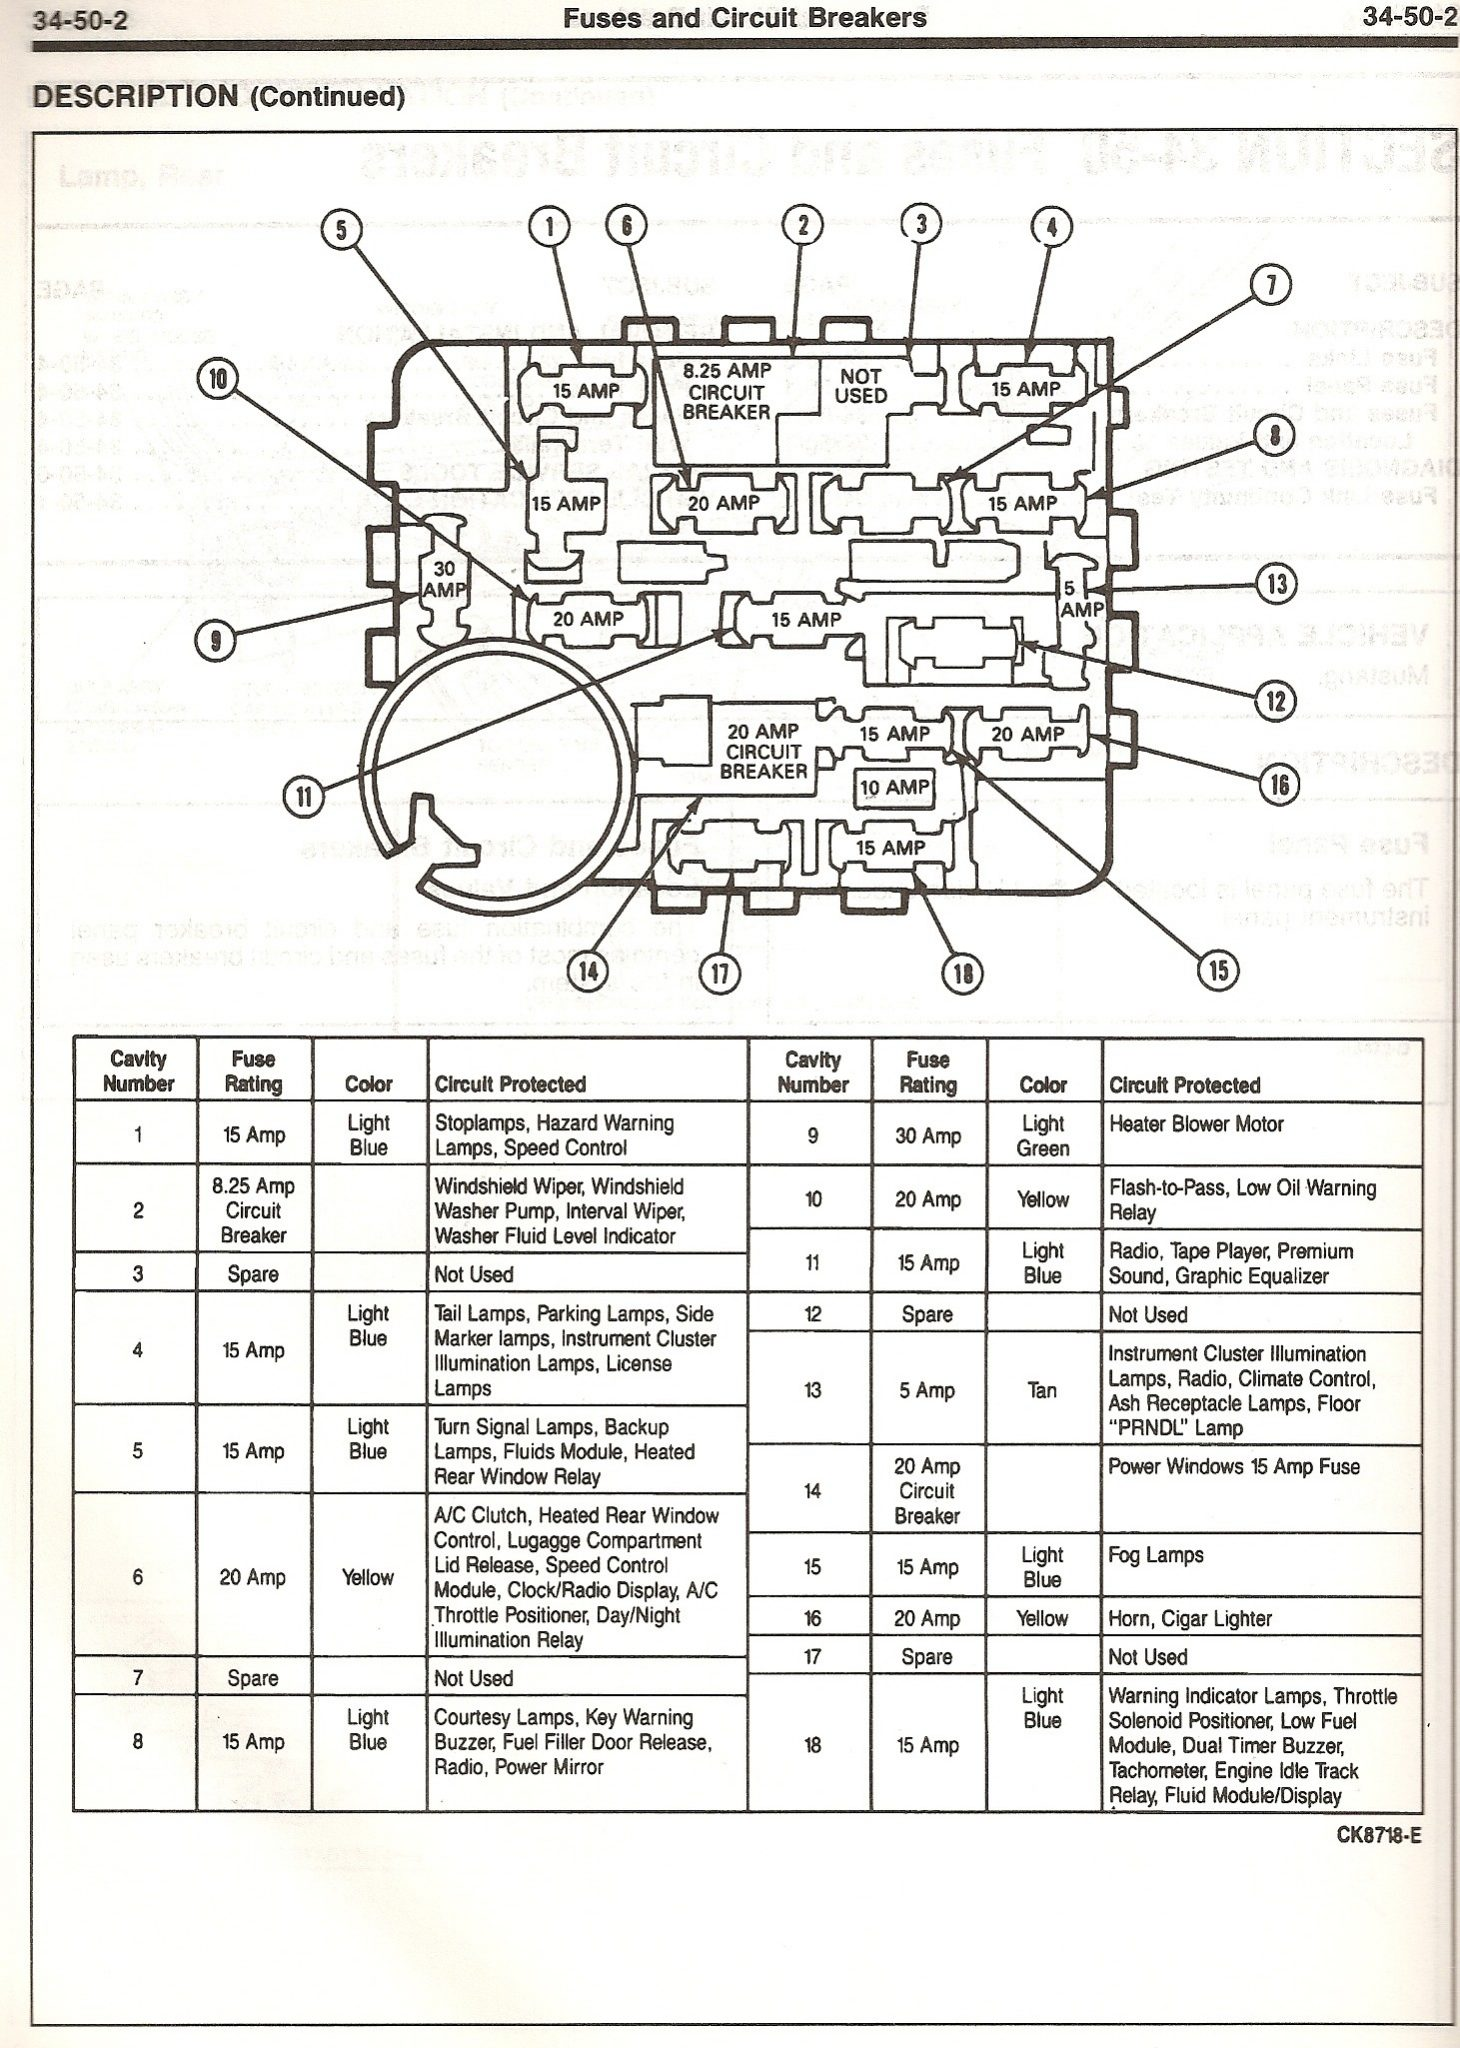 2002 Ford Mustang Fuse Panel Diagram Auto Electrical Wiring Alpine Cde 9881 Harness Under Dash